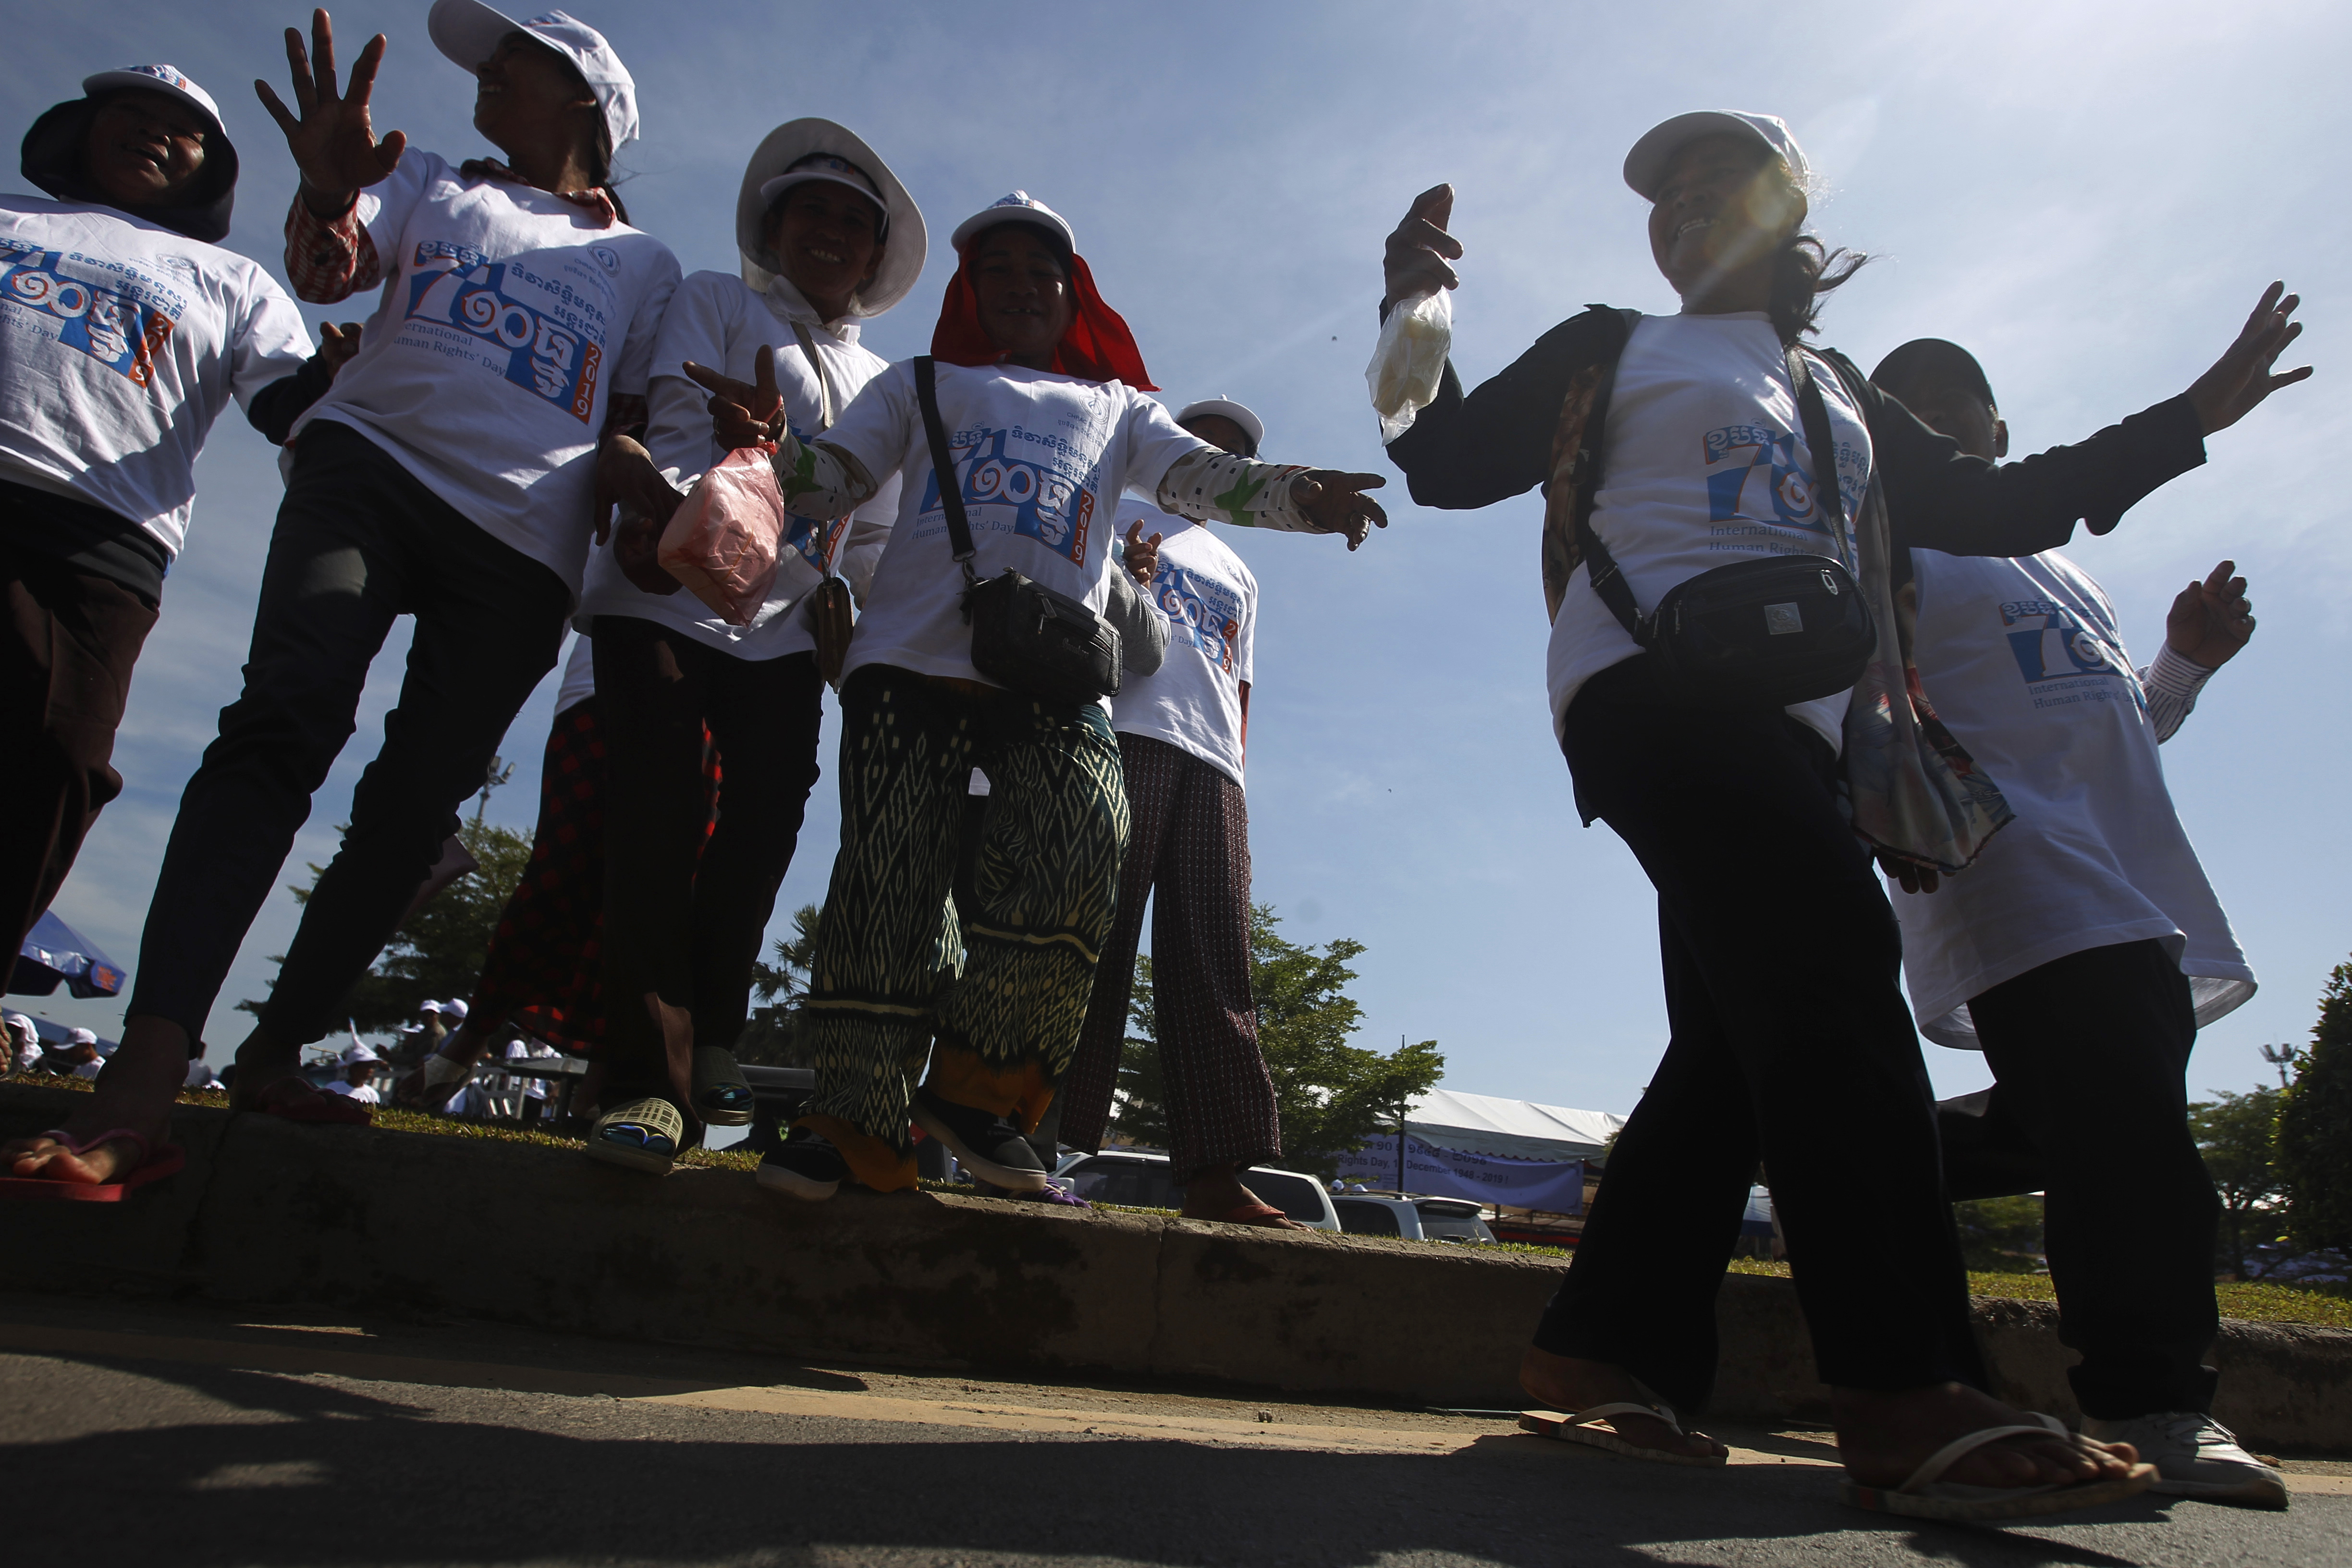 Cambodian factory workers walk across the main road after they participate in a celebration to mark the Human Rights Day at democracy square in Phnom Penh, Cambodia, Tuesday, Dec. 10, 2019. The United Nation's adopted Dec. 10 as the international human rights day in 1948 and has been observed annually ever since. (AP Photo/Heng Sinith)